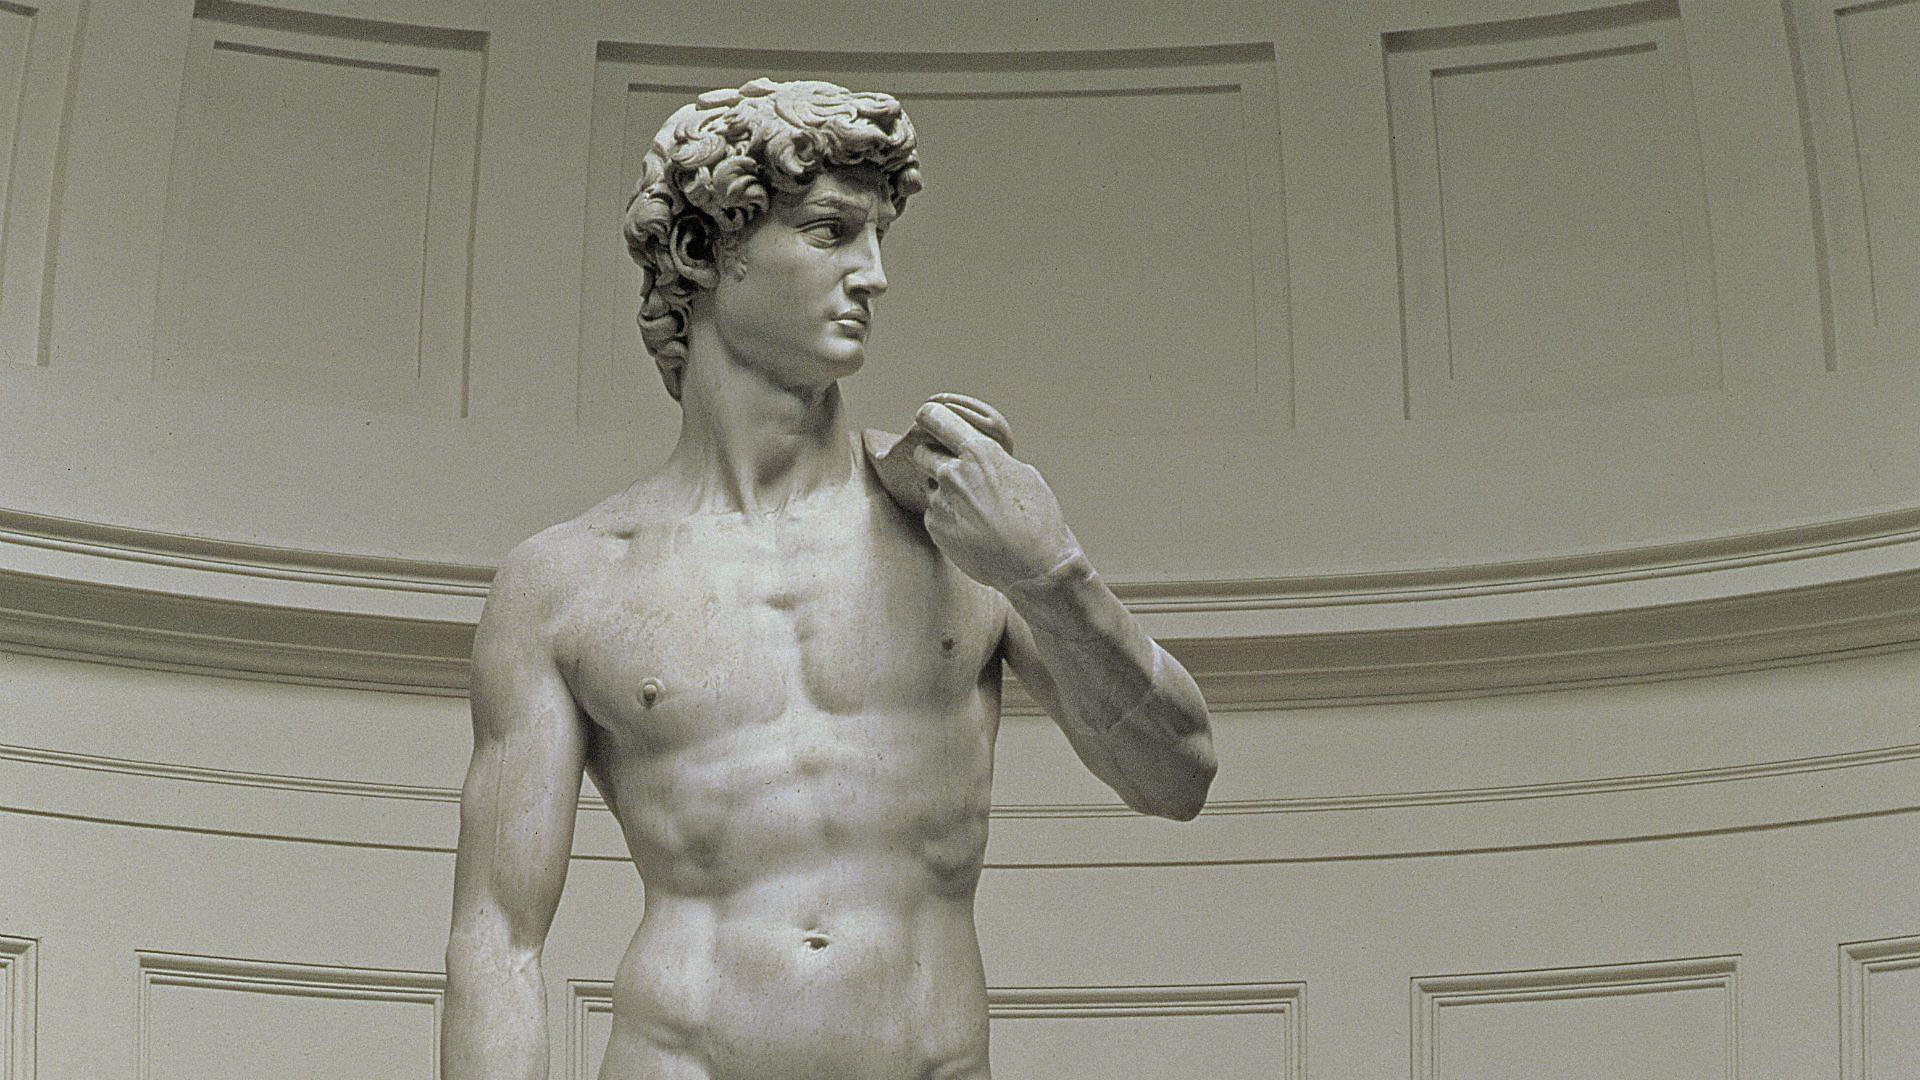 Hannah Gadsby: Arts Clown: Michelangelo's David : BBC : Free